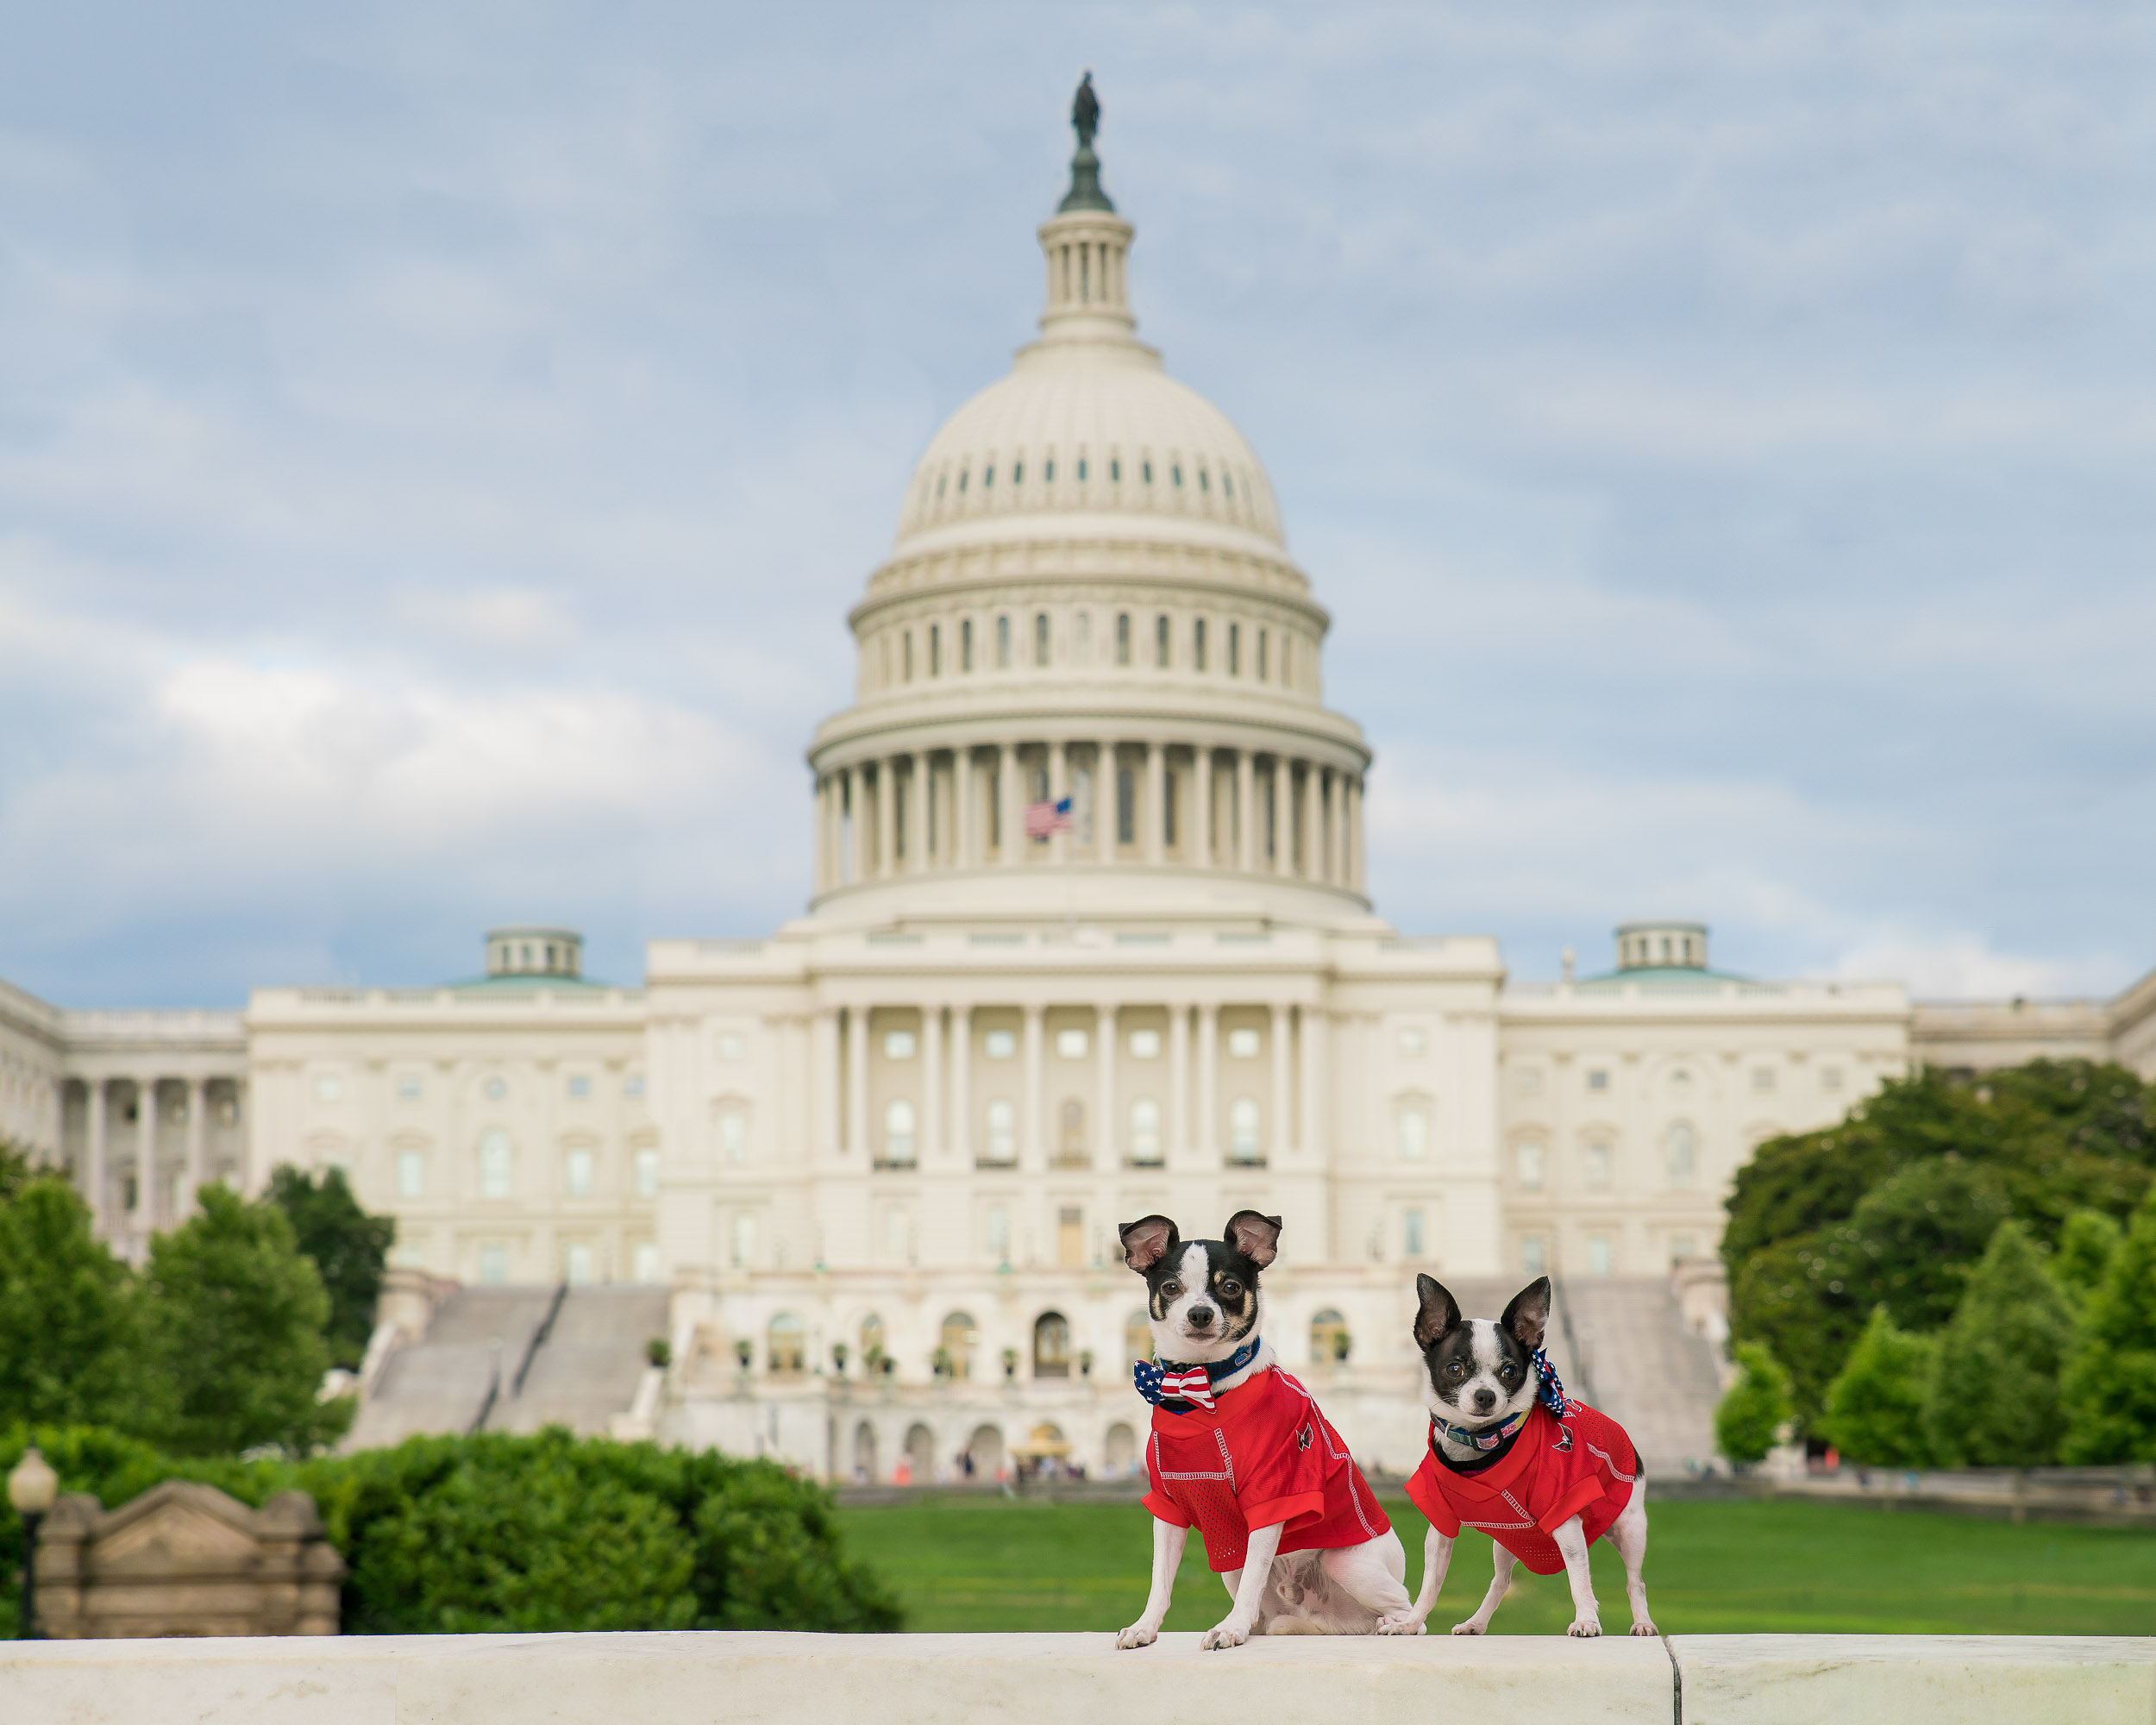 Here is another image with two chihuahuas in front of the US Capitol building. Yes, the dogs were really there (this is not a backdrop).